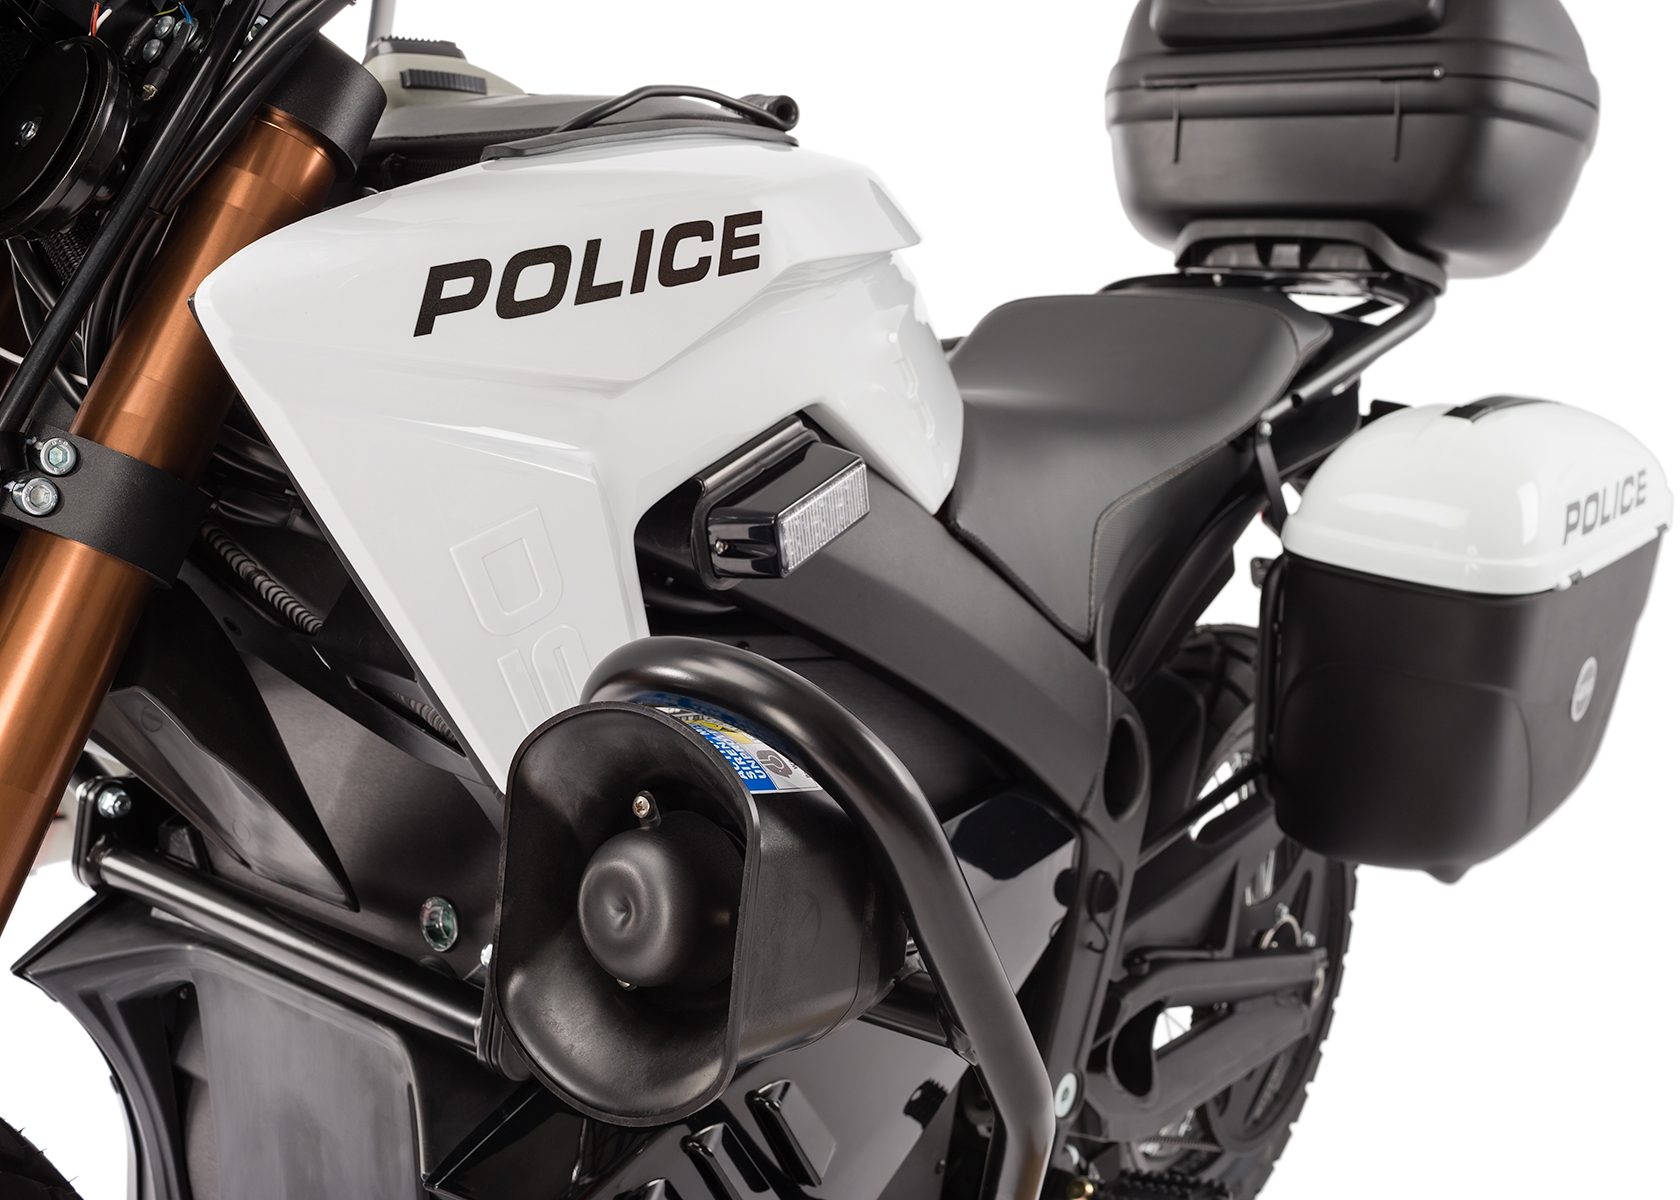 2013 Zero Police Electric Motorcycle: Siren